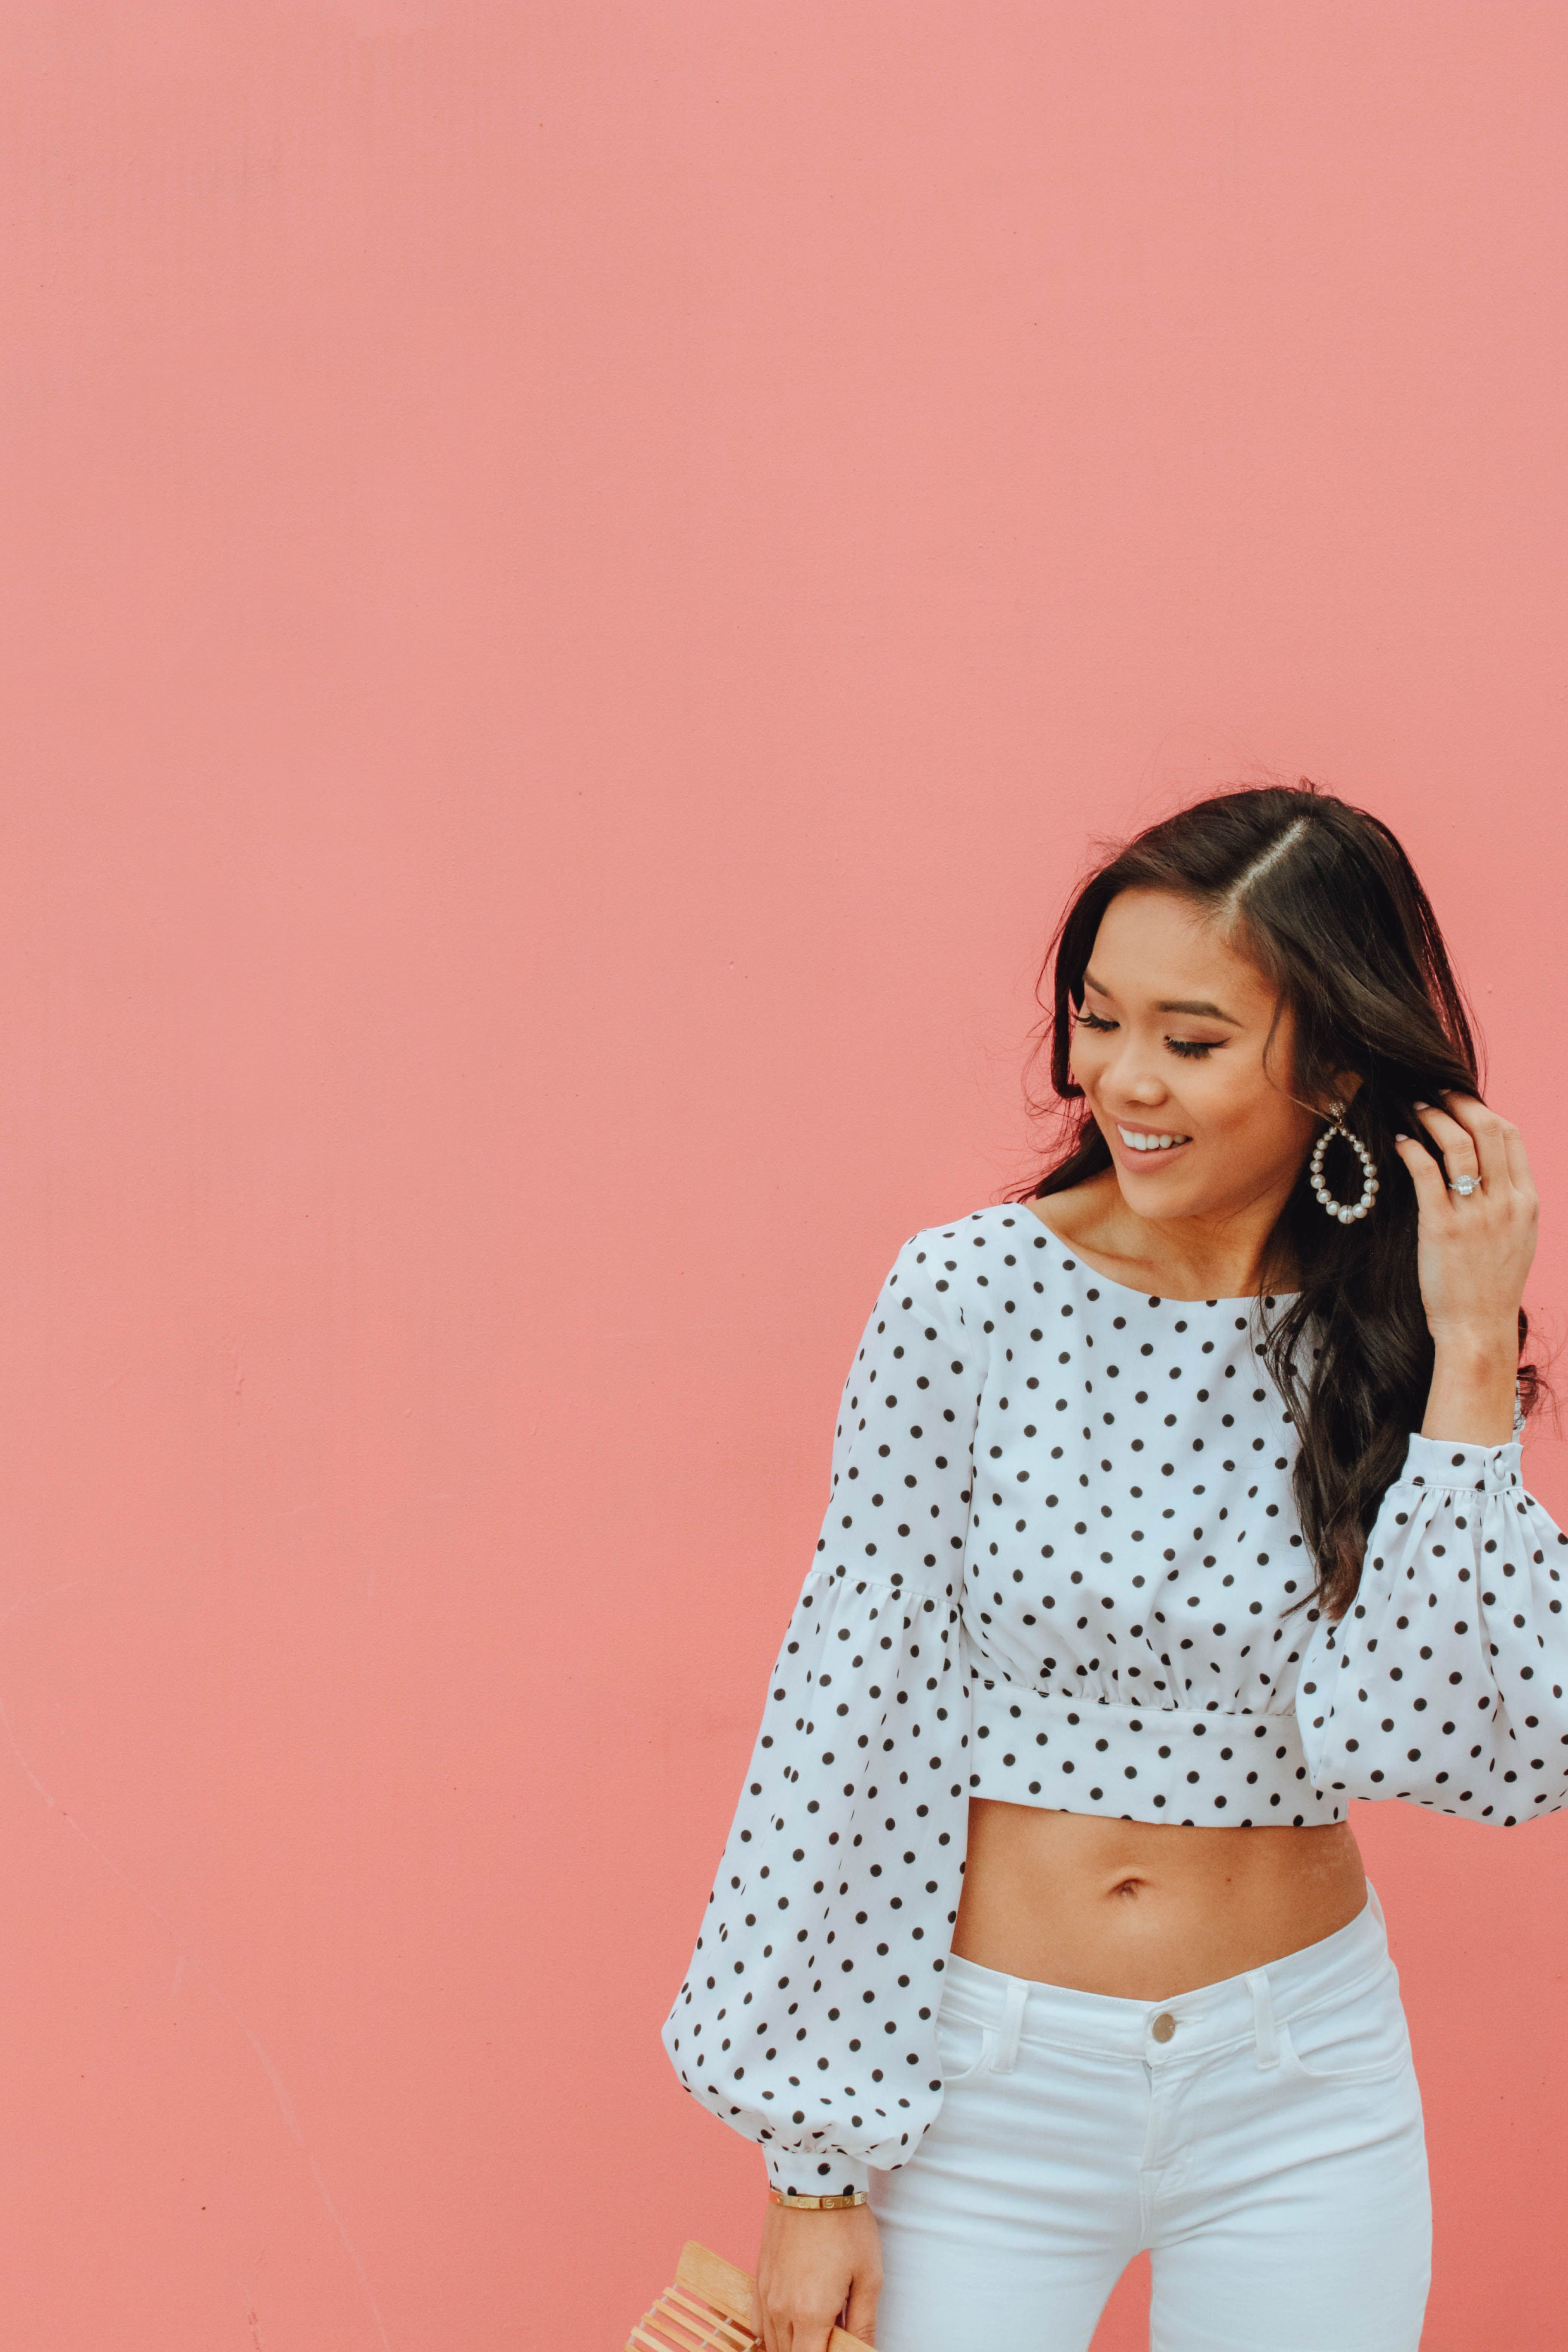 3b6b21ae337 Hoang-Kim wears a polka dot crop top with white jeans and olive + piper  earrings